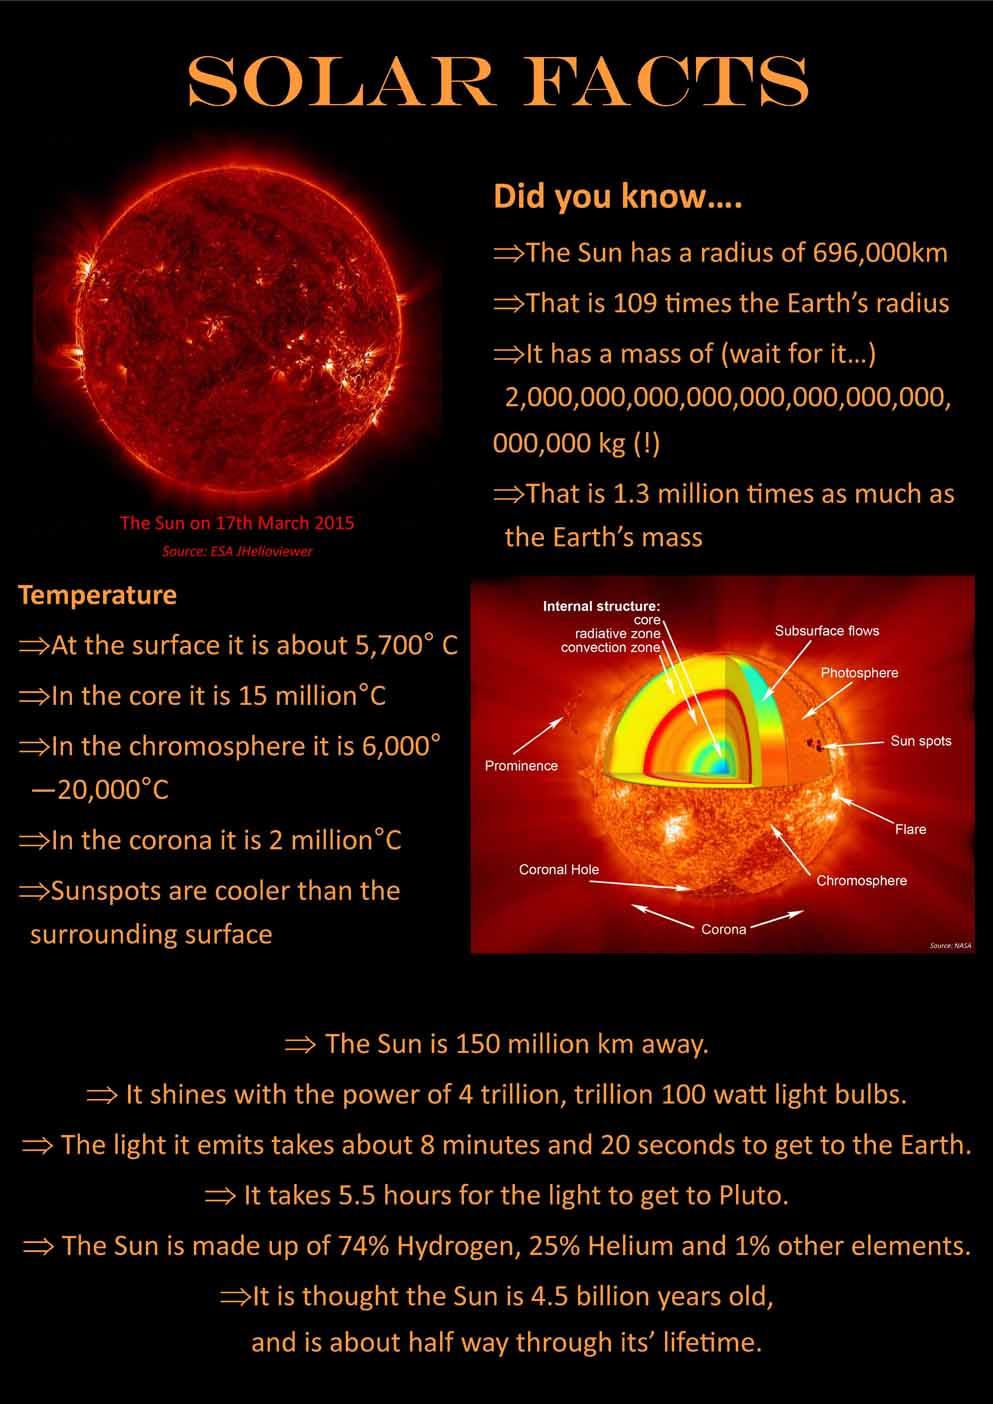 Solar Facts picture